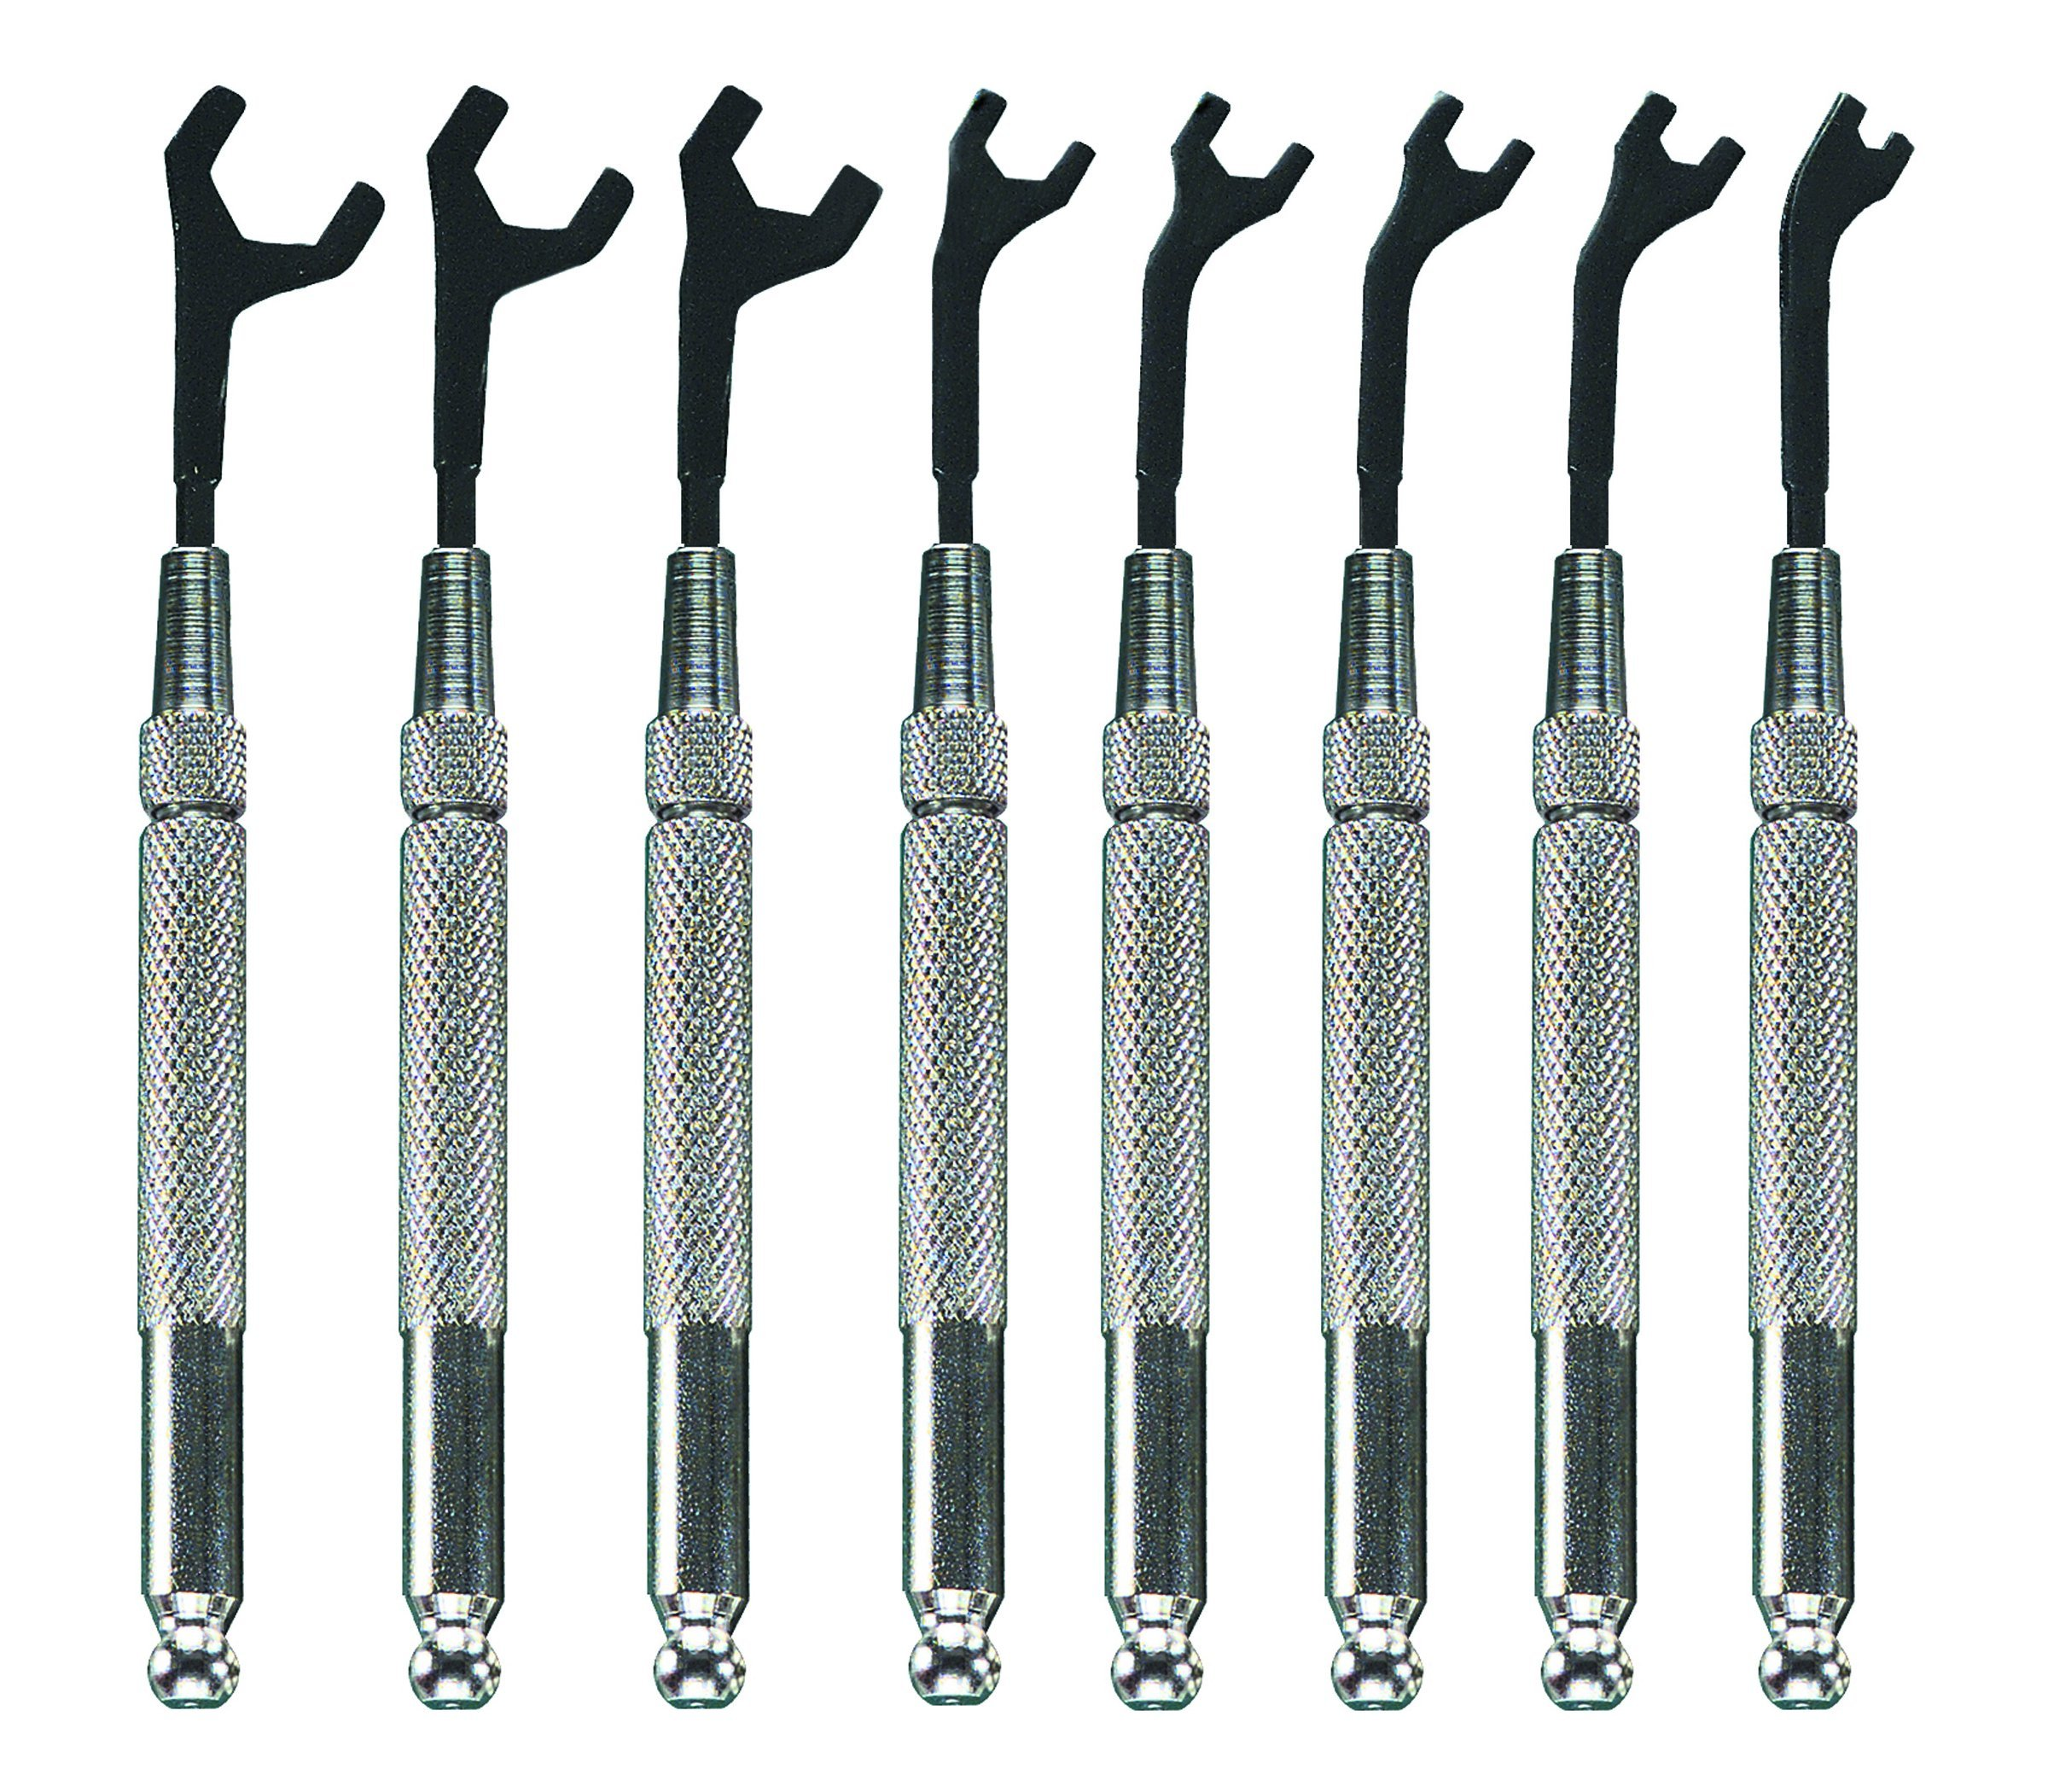 Moody Tools 58-0161 8-Piece Metric Open End Wrench Set